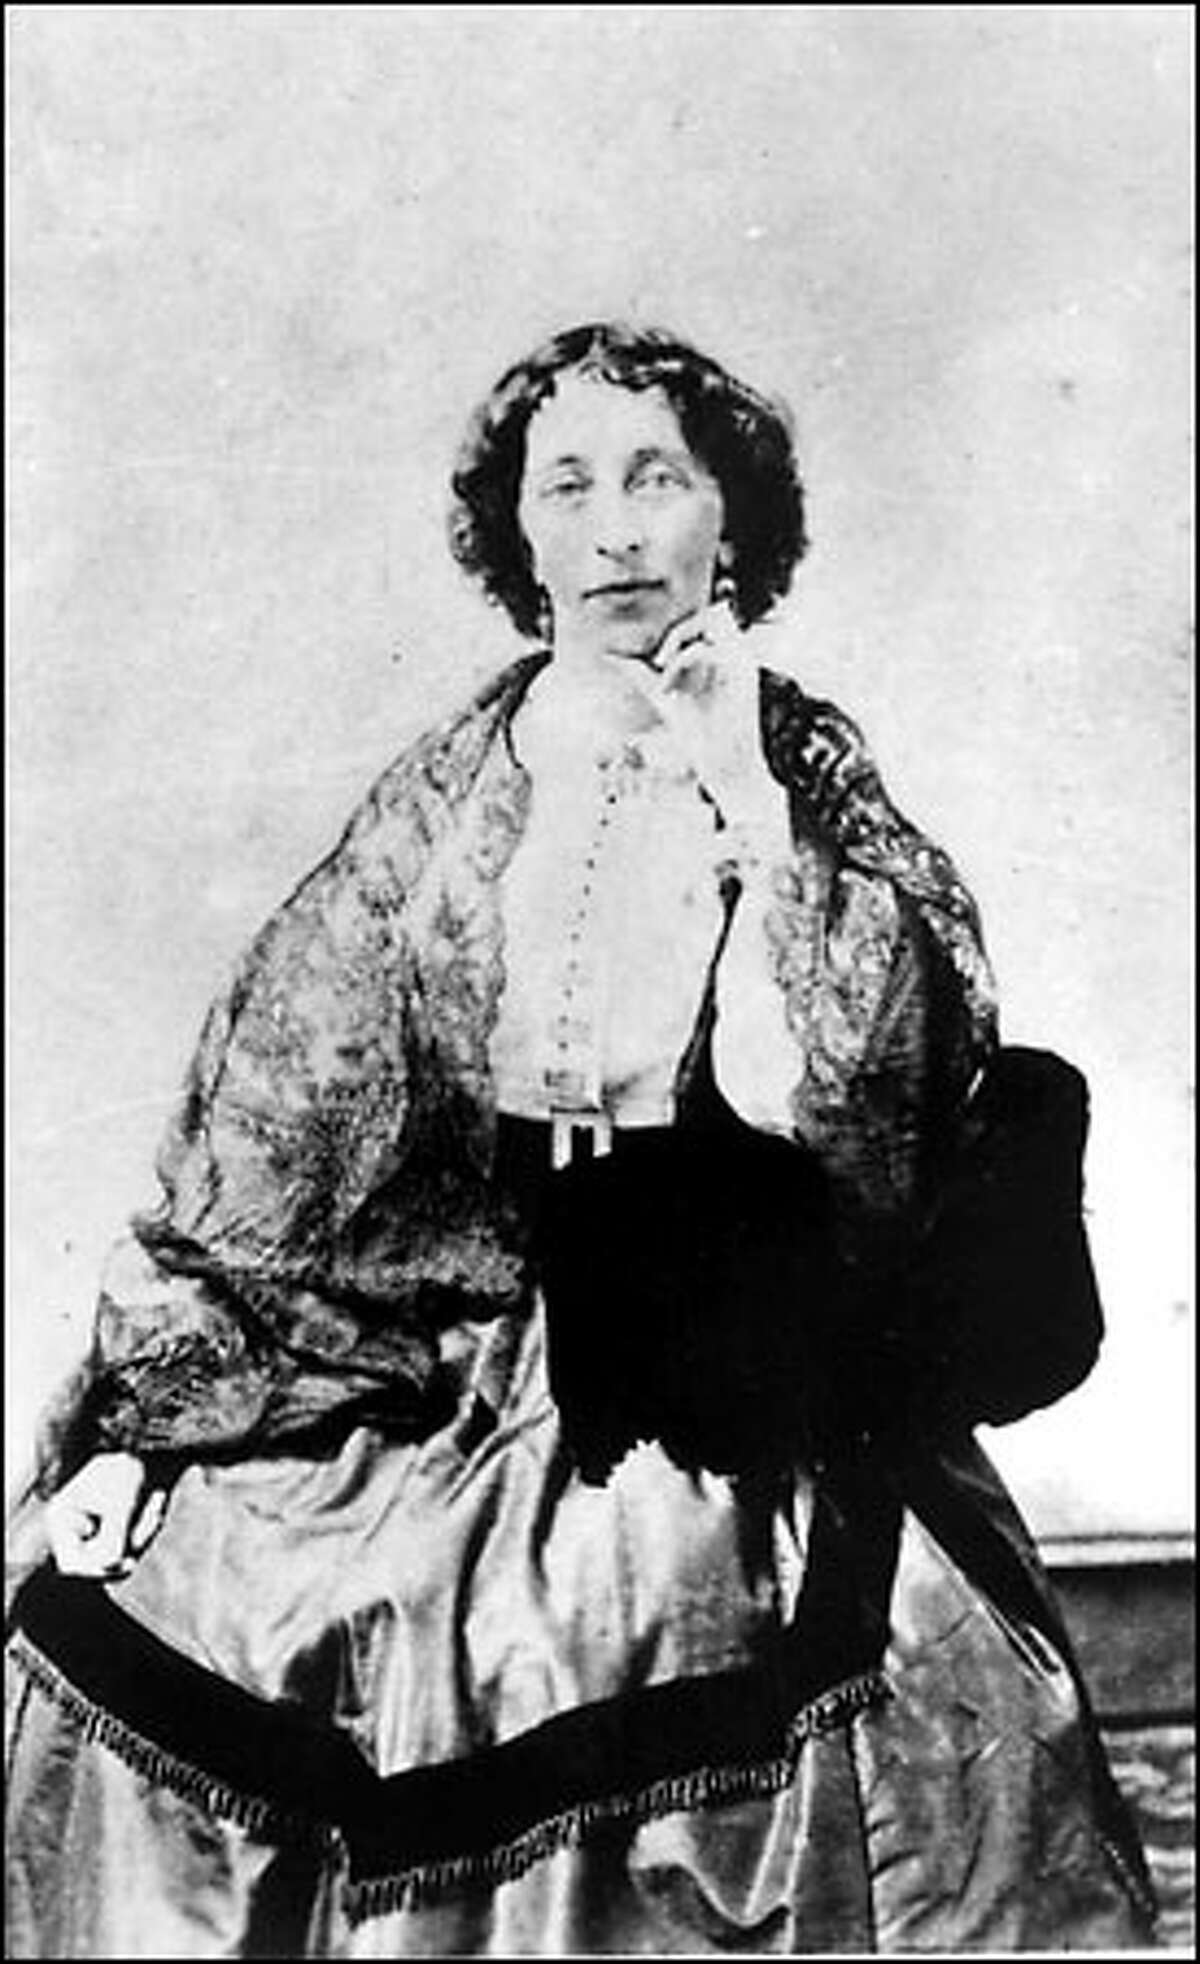 Elizabeth Ordway, the Mercer Girl who didn't marry, is pictured a few years after her 1864 arrival in Seattle.